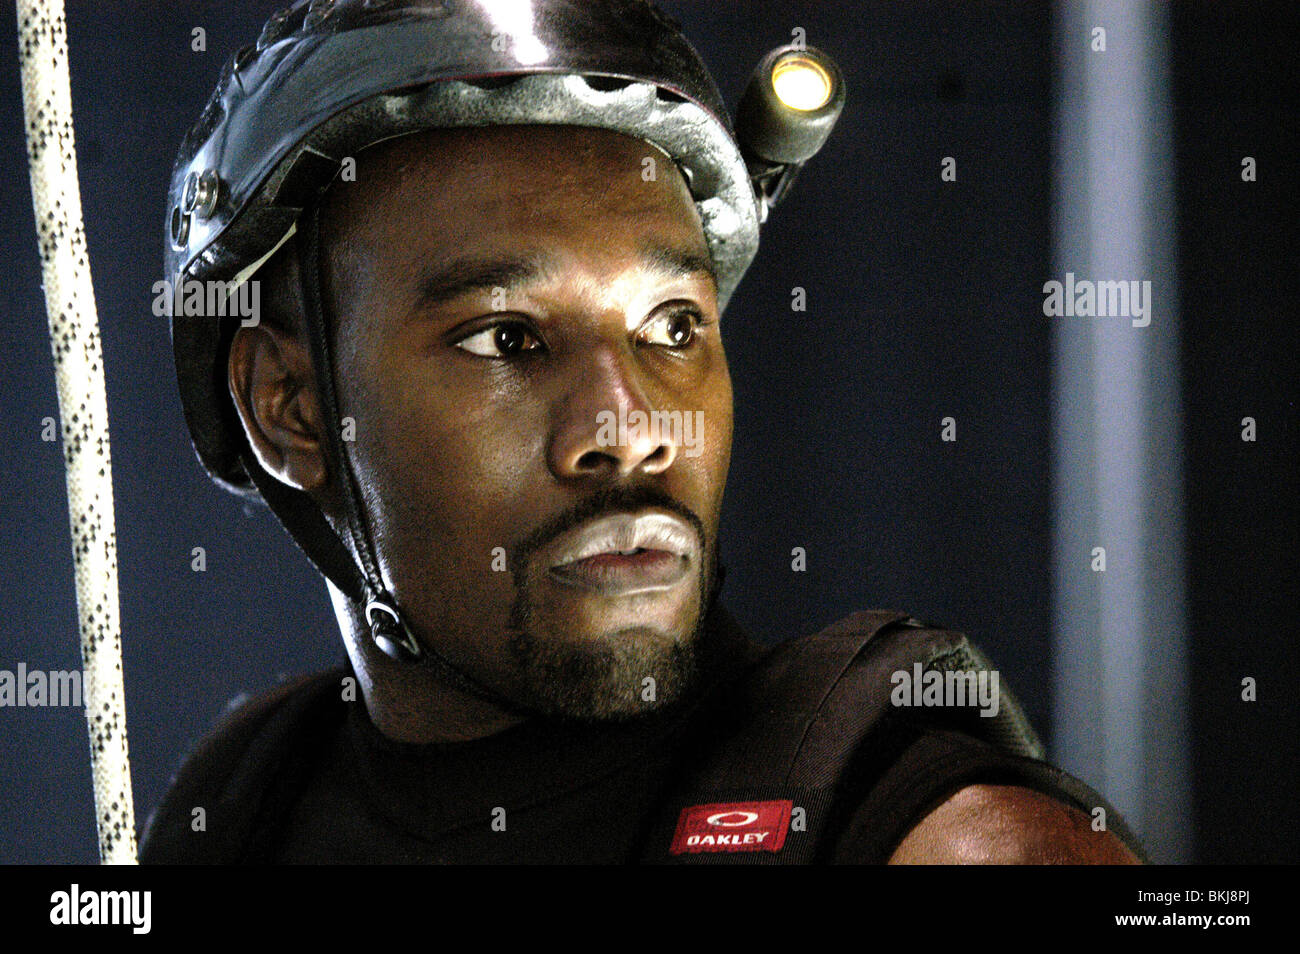 THE CAVE (2005) MORRIS CHESTNUT CAVE 001-11 - Stock Image